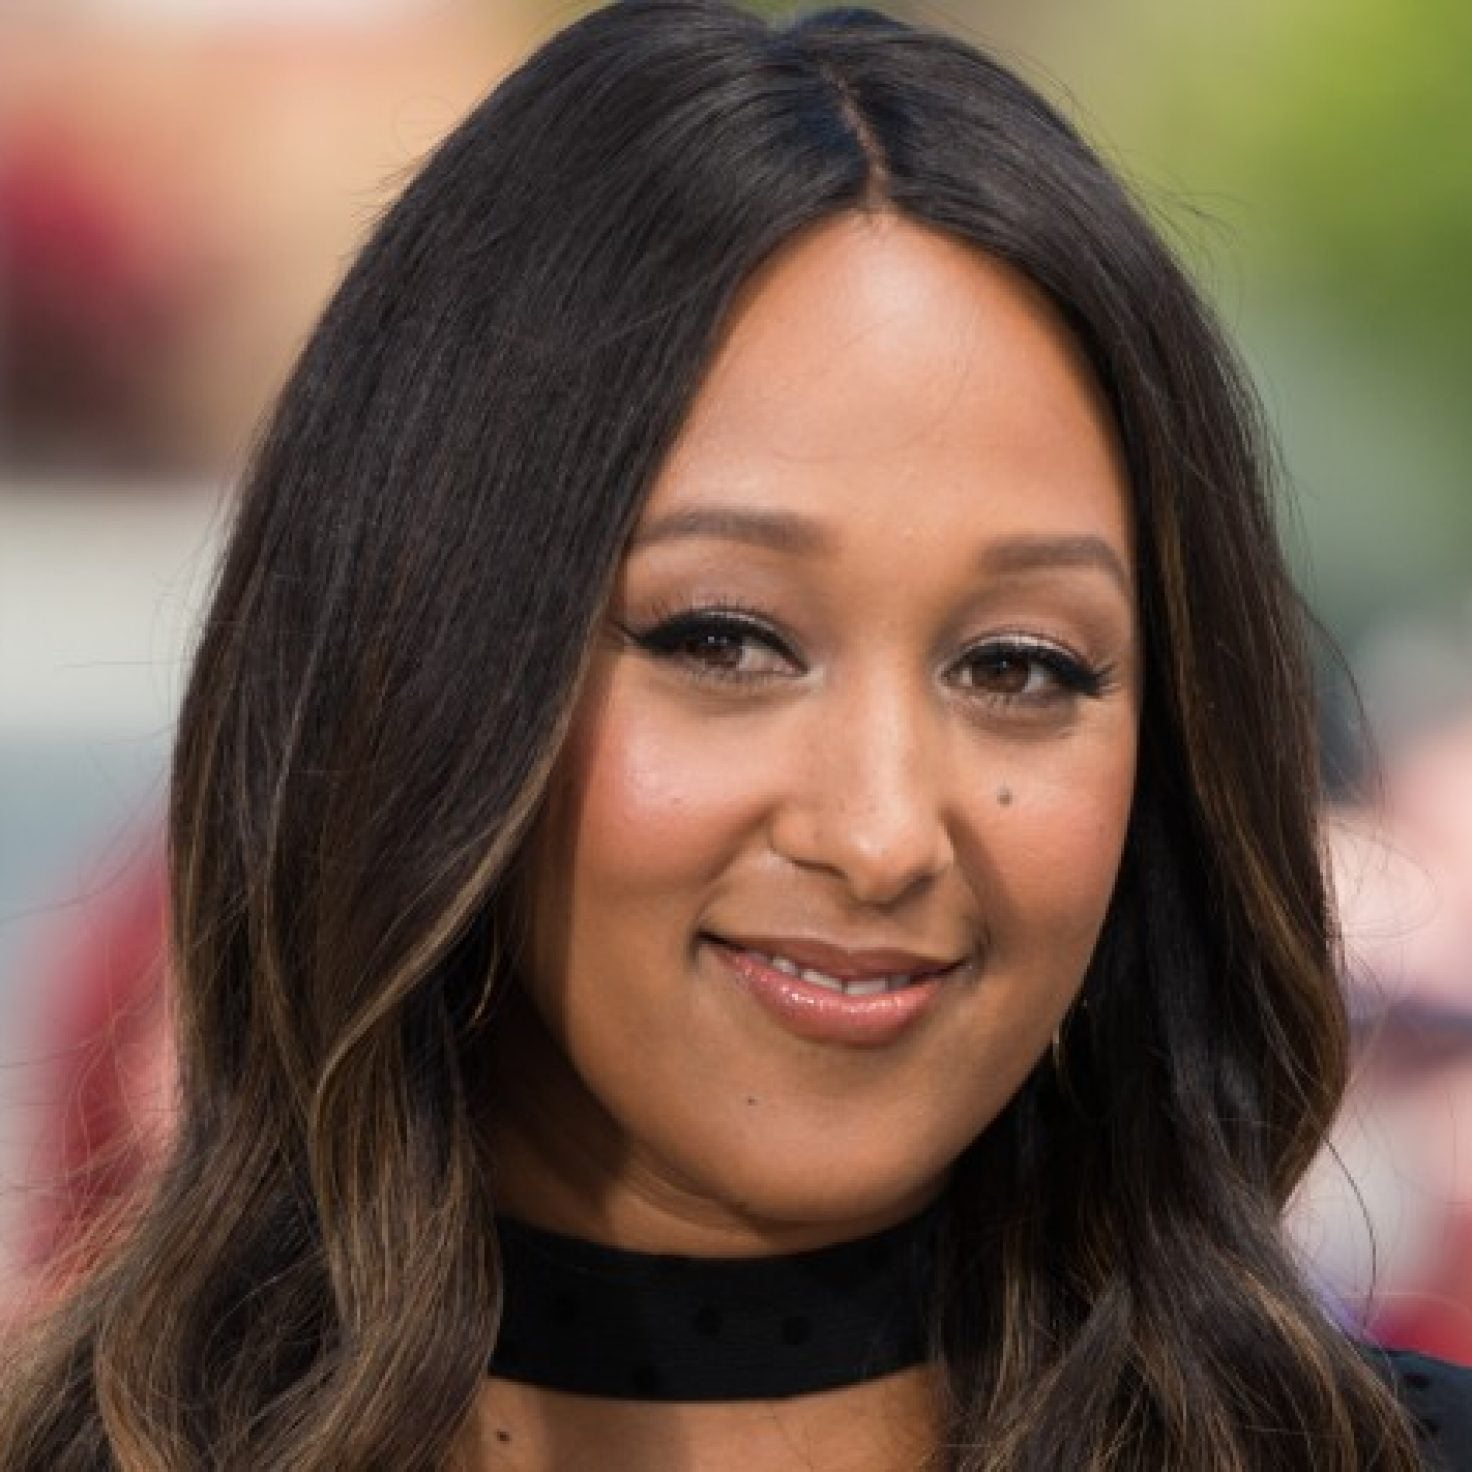 Tamera Mowry-Housely's Hairline Is Full Of Grays, And She's Okay With It